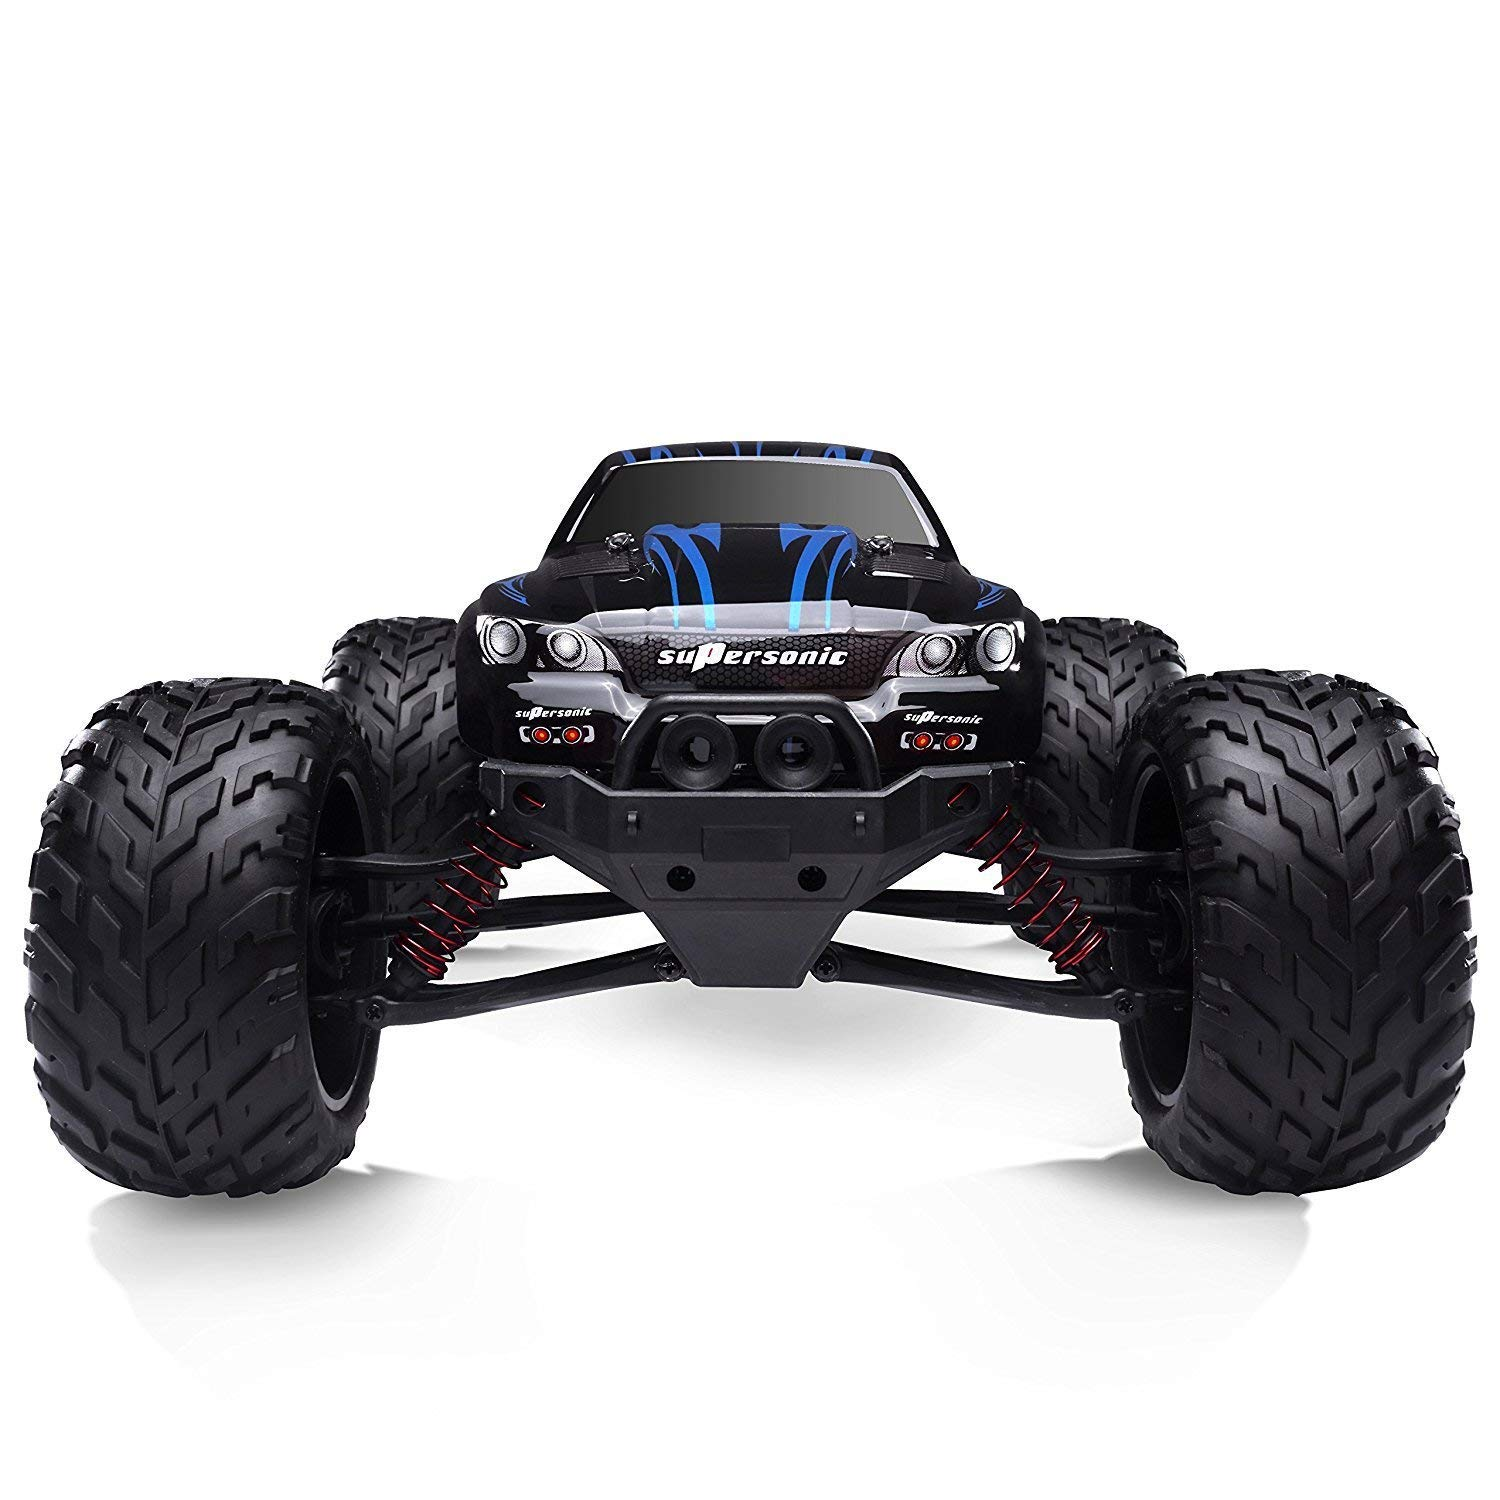 Best RC Cars Reviews: Check out the Top Models on the Market in 2021 2